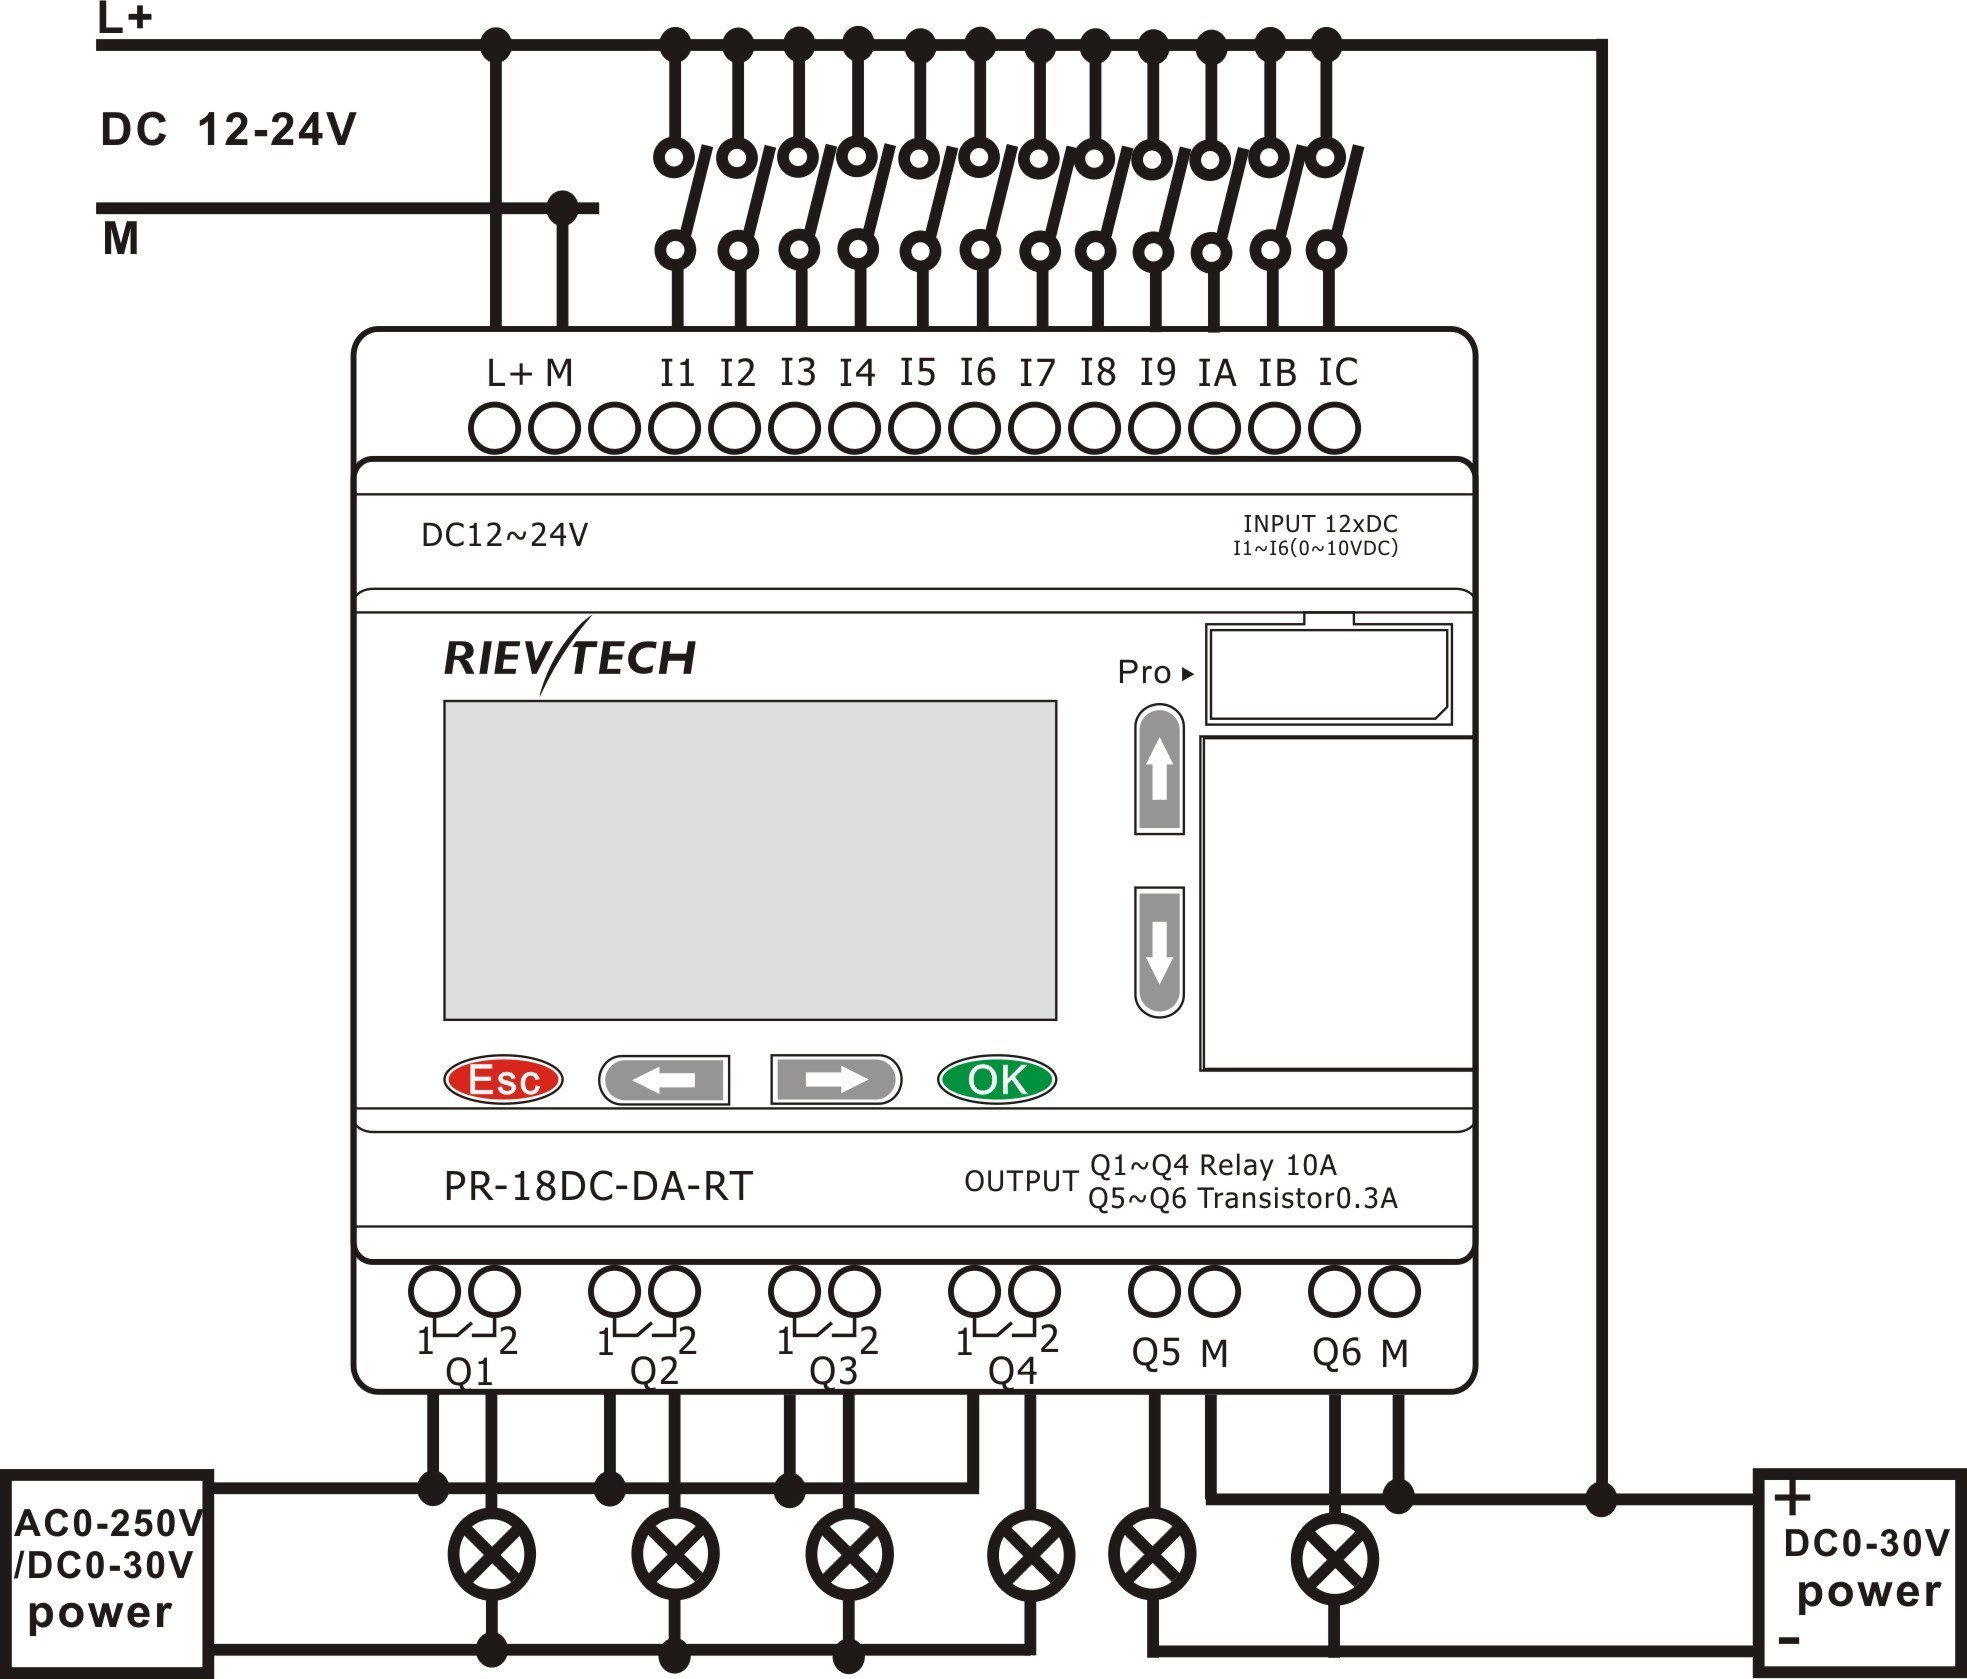 jandy panel wiring diagram: get plc control panel wiring diagram pdf  download